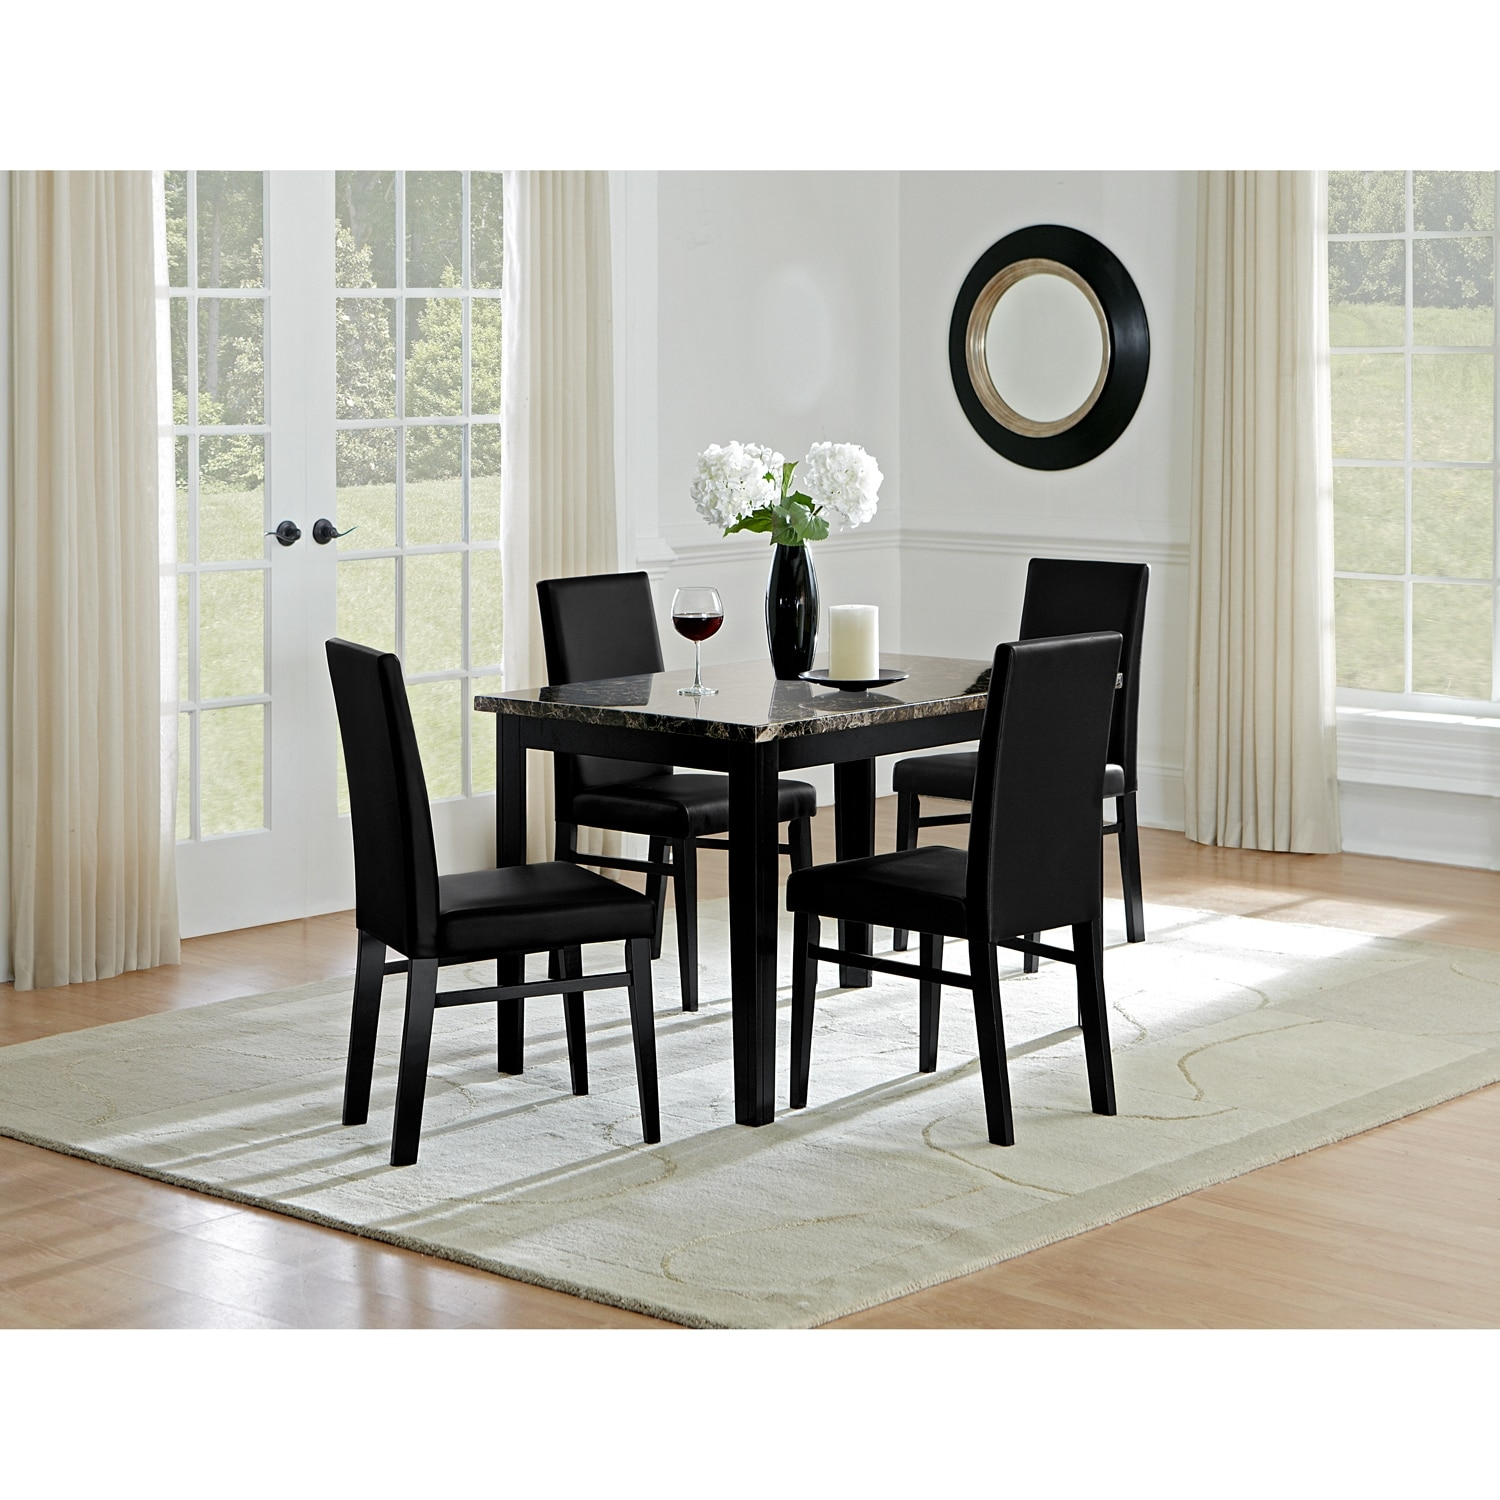 Shadow Dining Table Black American Signature Furniture